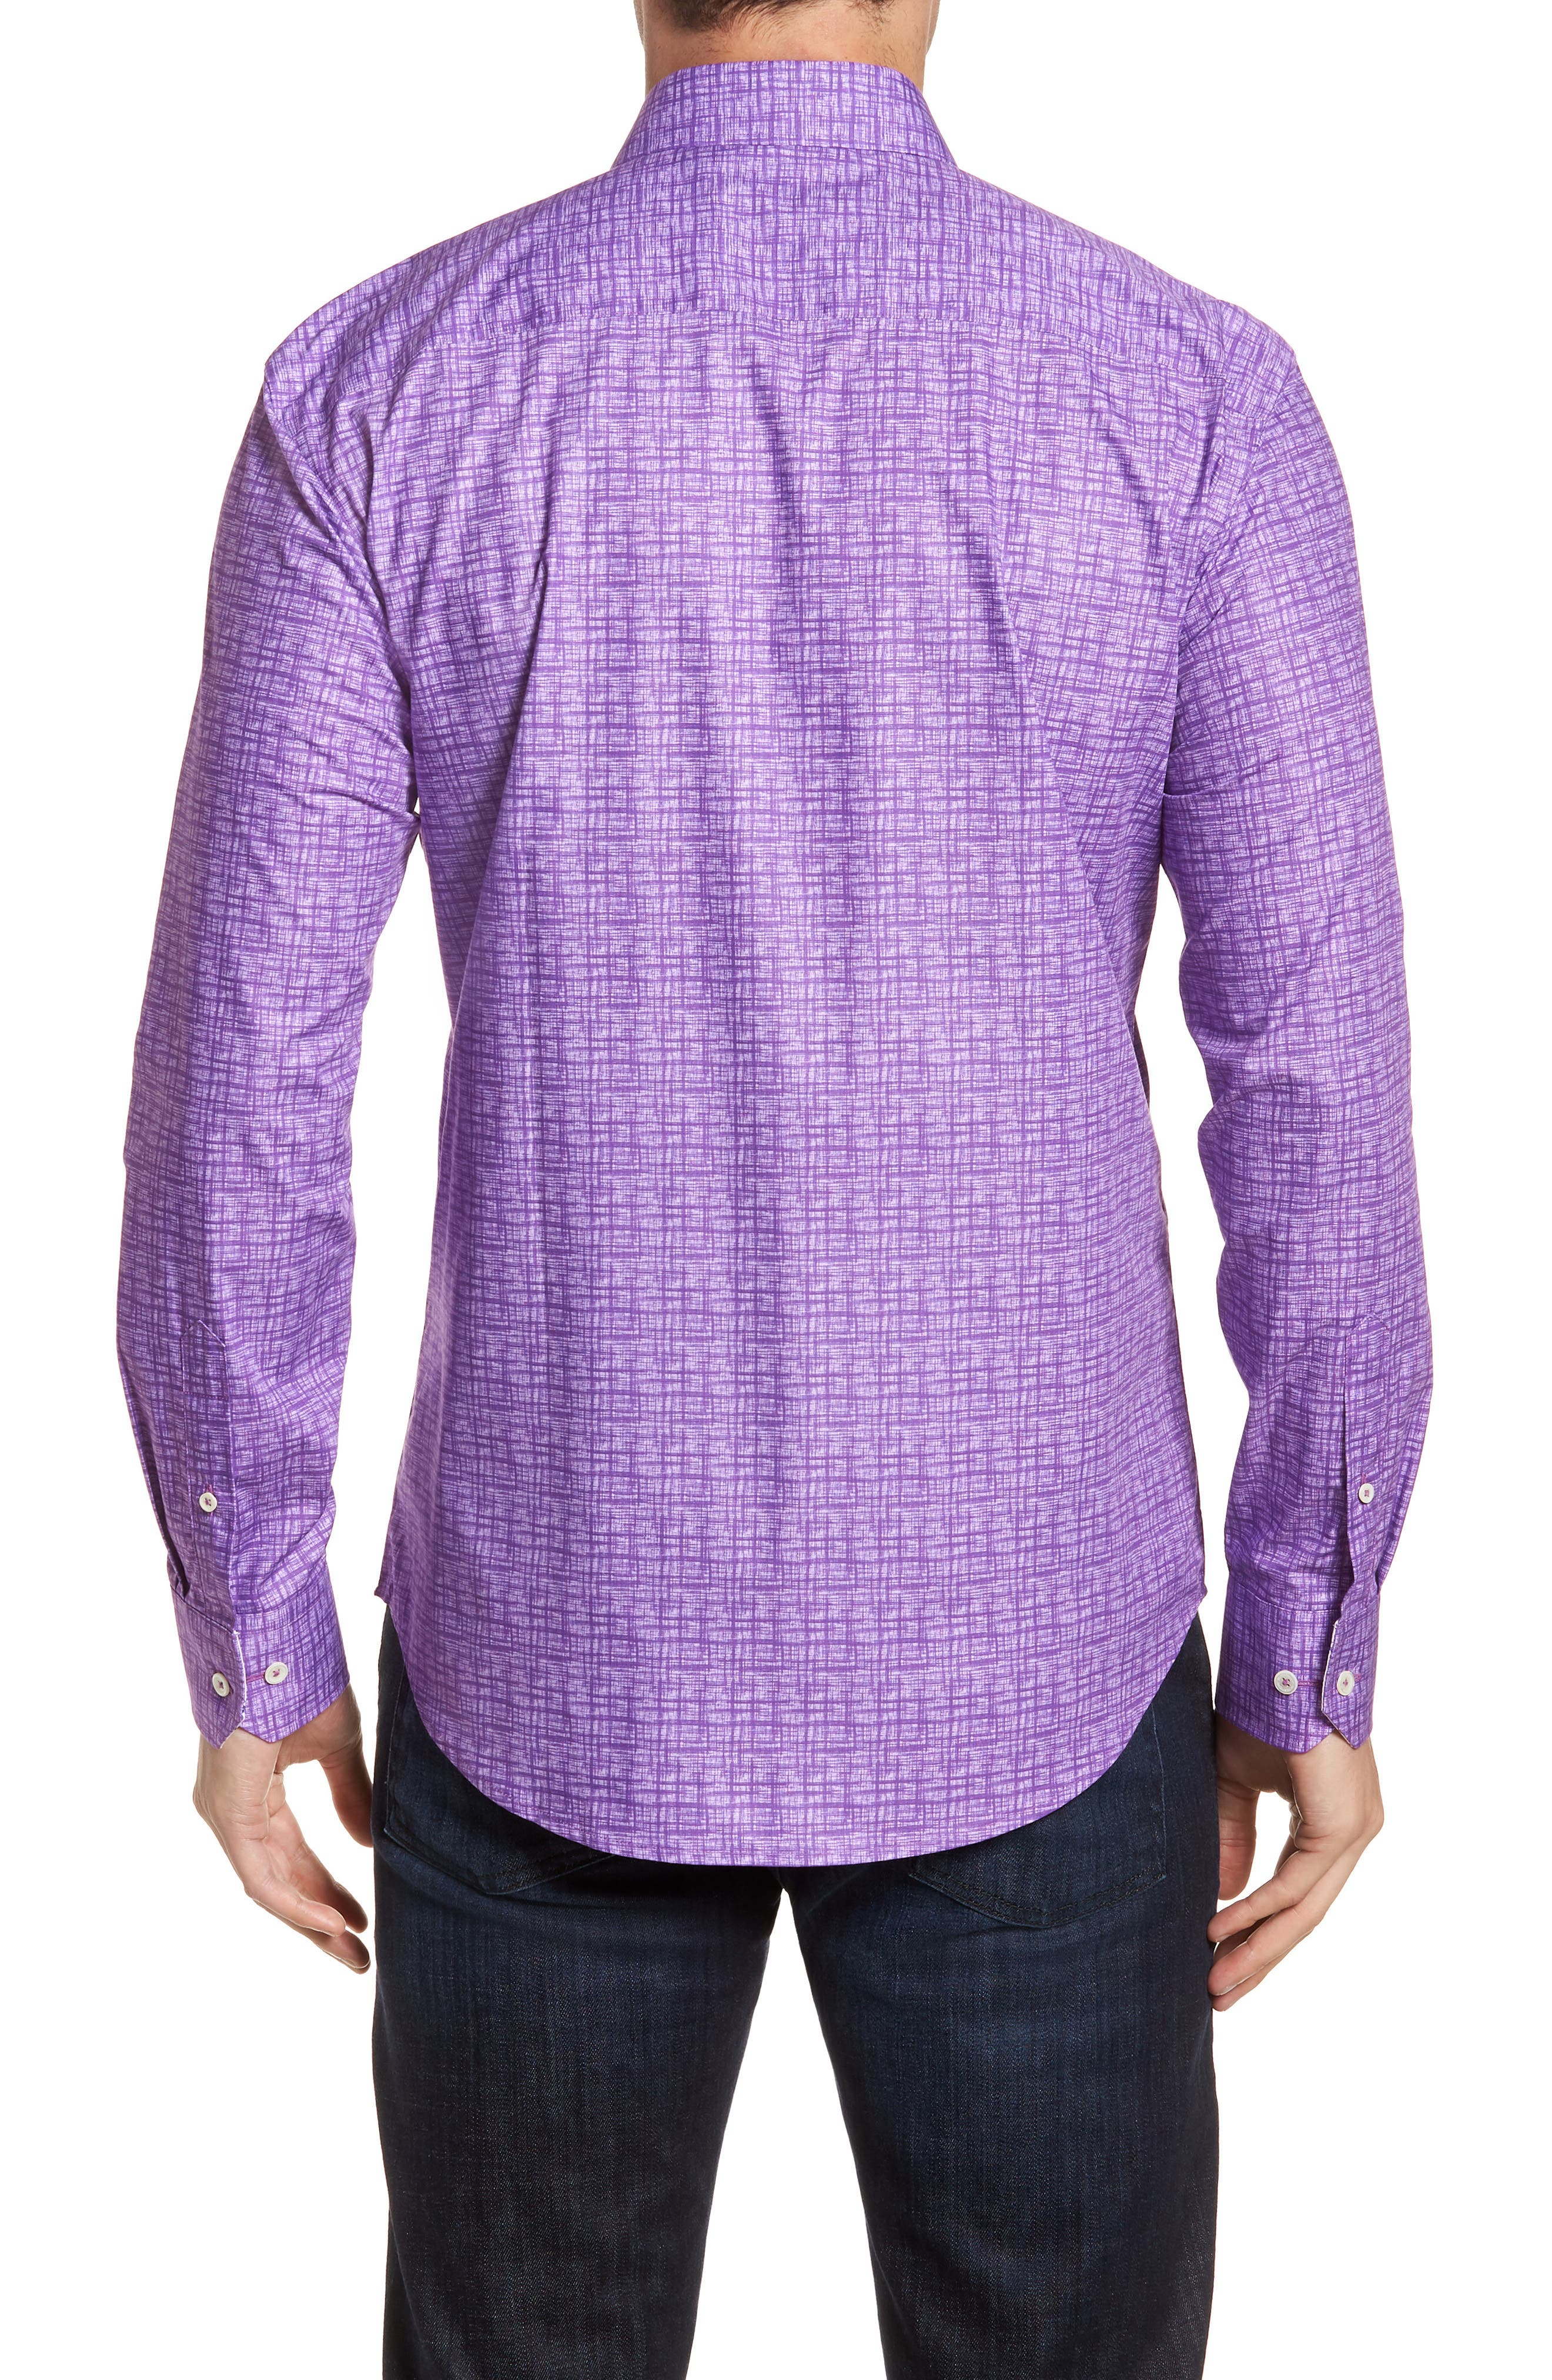 Freehand Shaped Fit Sport Shirt,                             Alternate thumbnail 3, color,                             Orchid